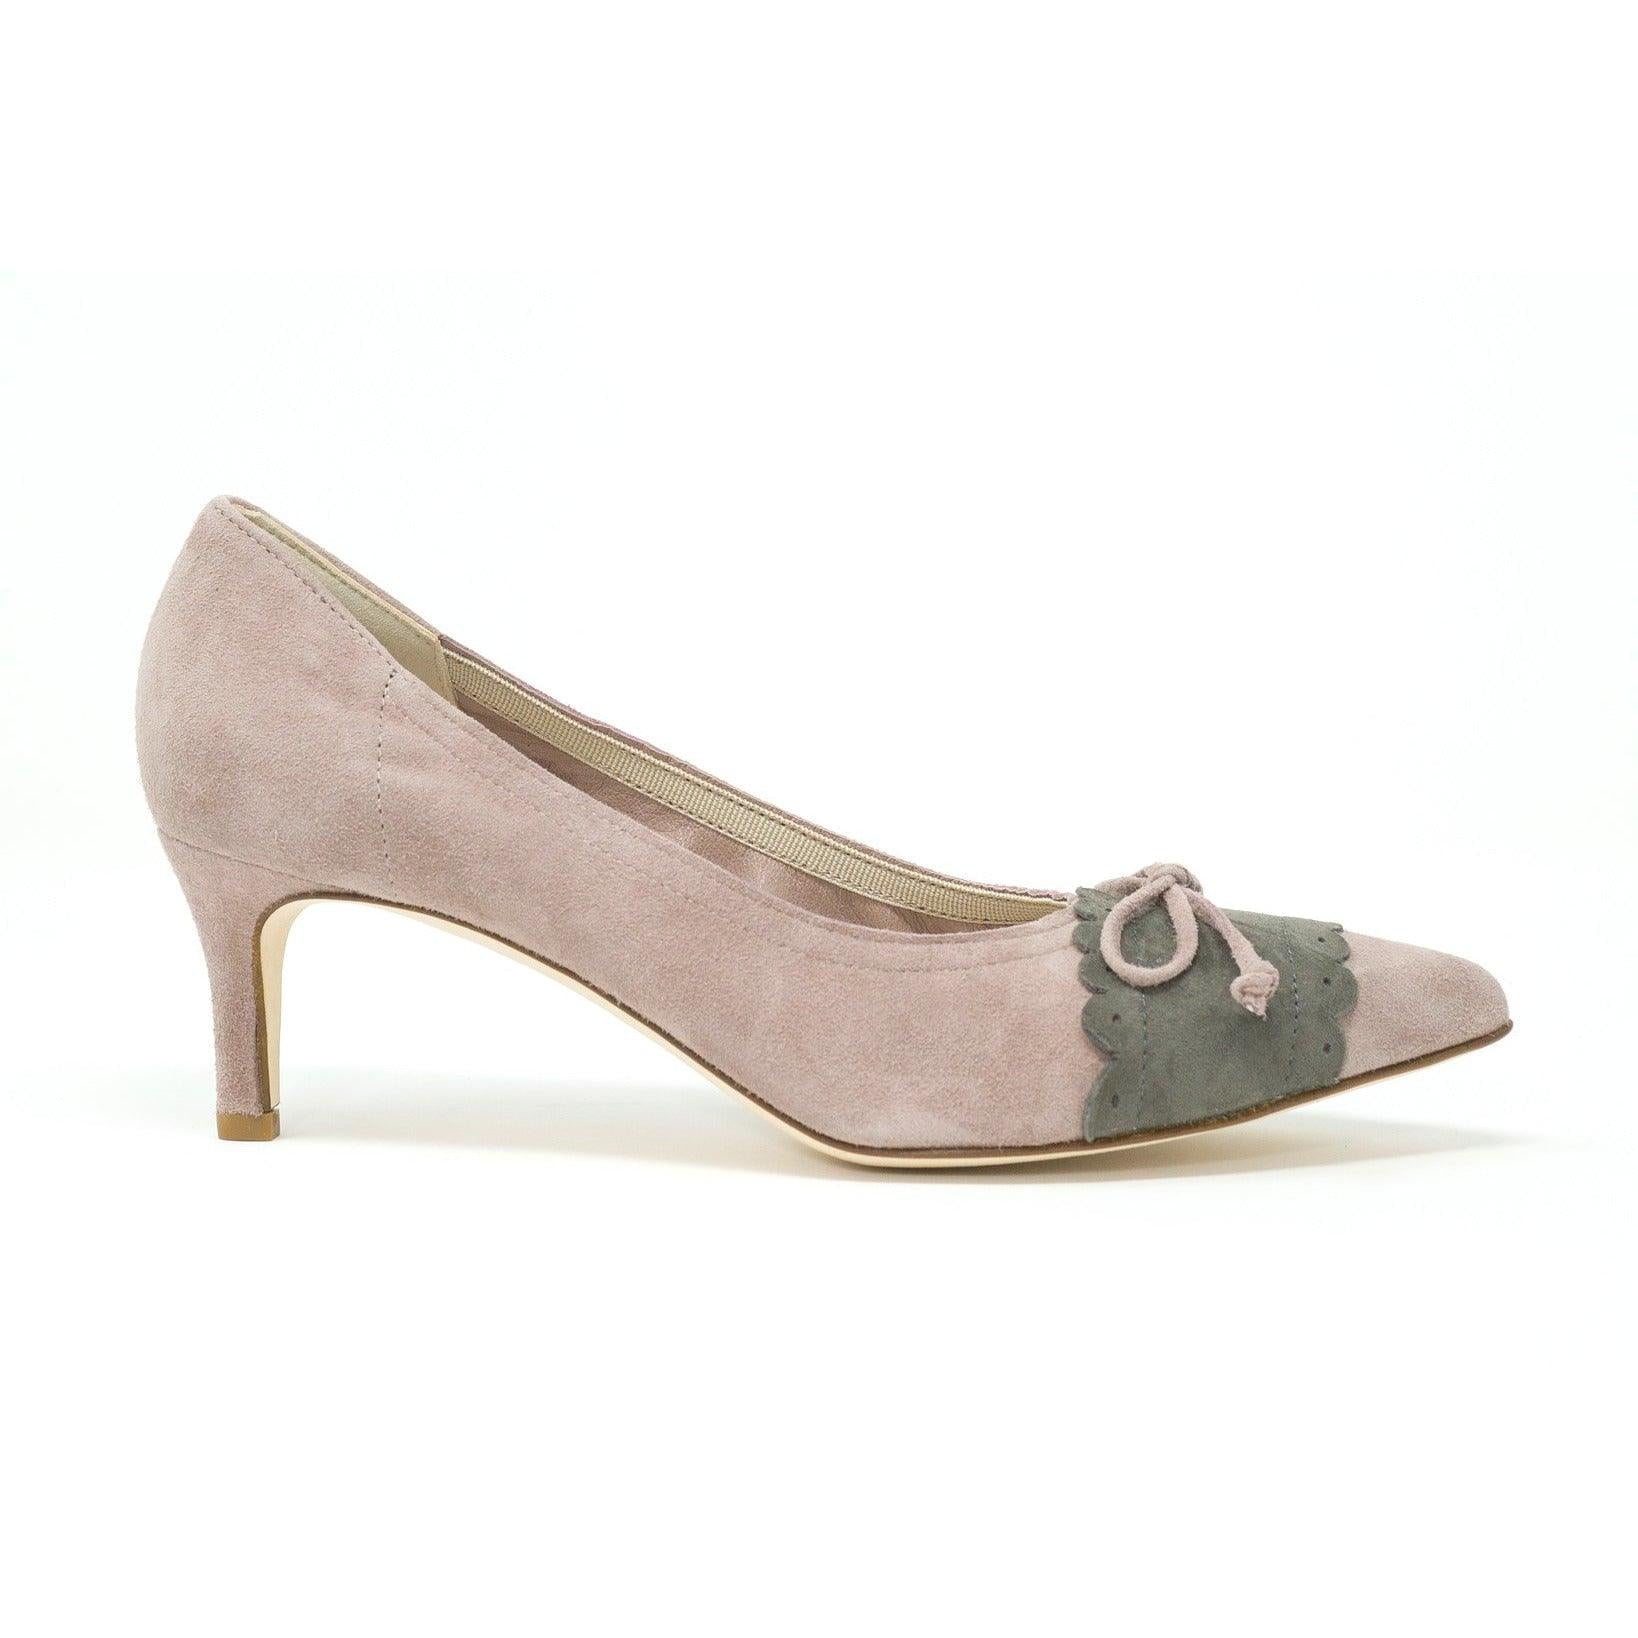 MIL185 55T Women Pumps - New Fall Winter 2019-2020 Collection